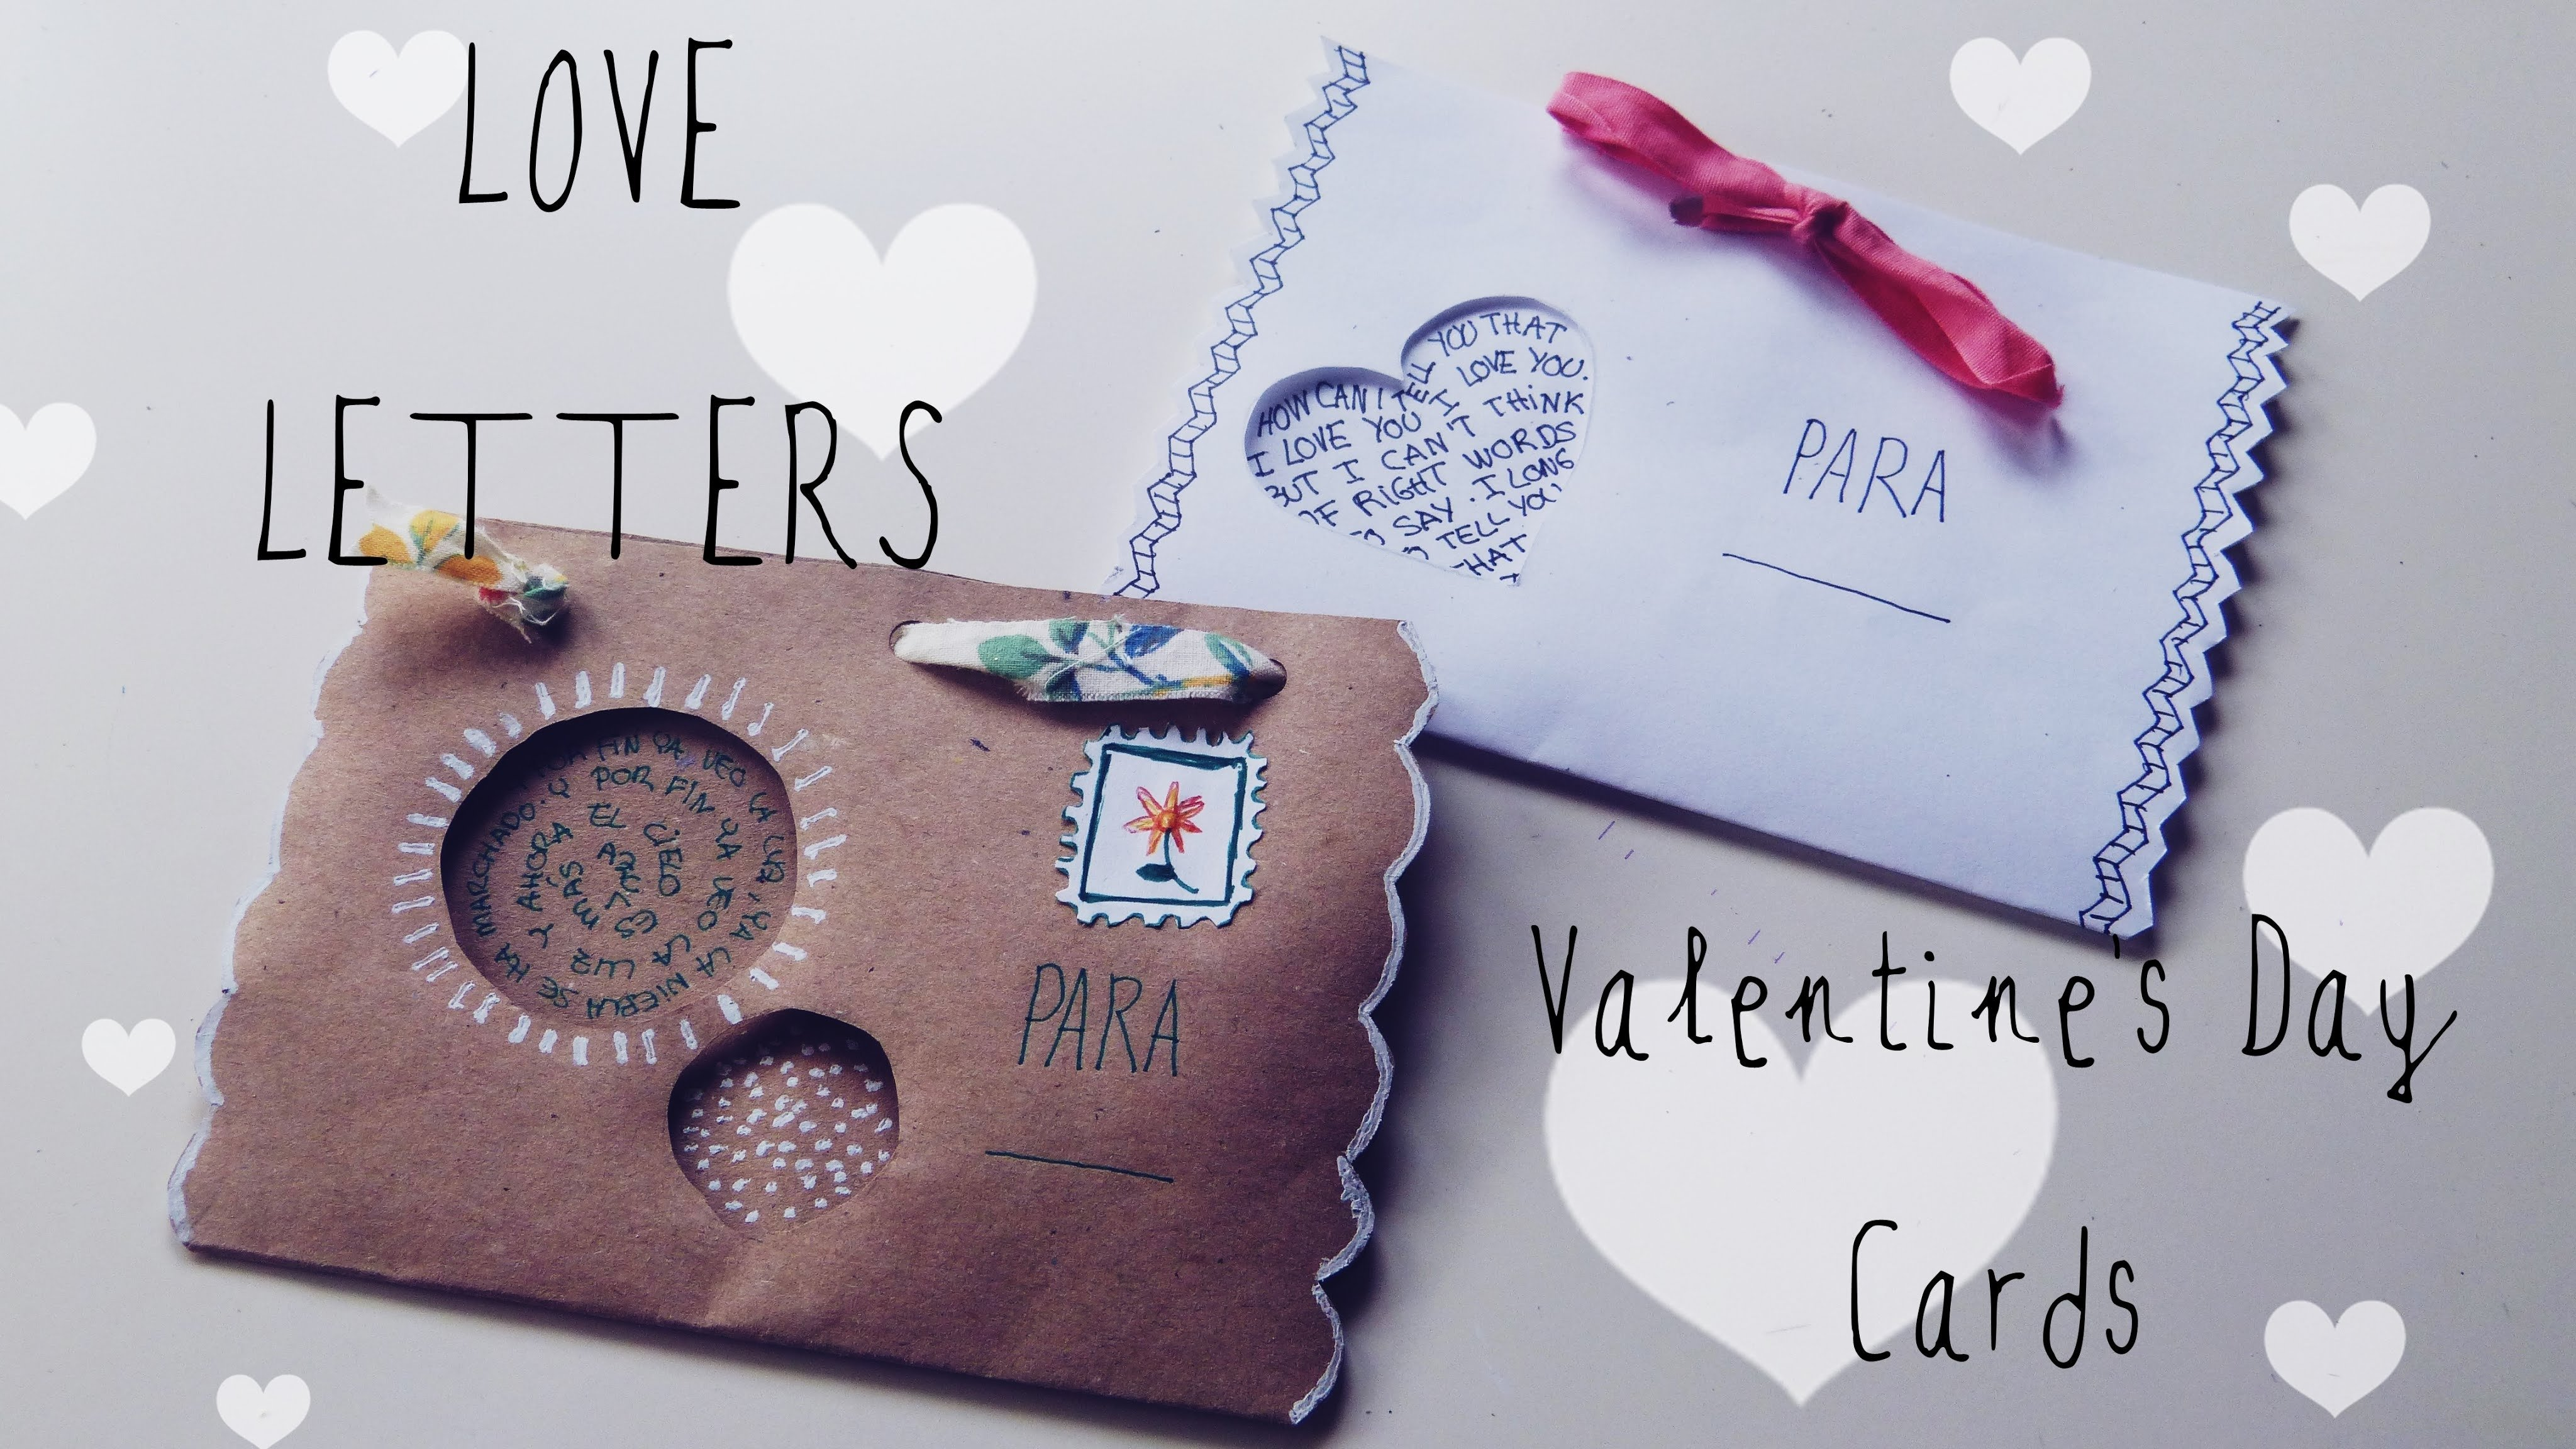 10 Unique Cute Card Ideas For Boyfriend how to make cute envelopes diy gifts for boyfriend easy youtube 2020